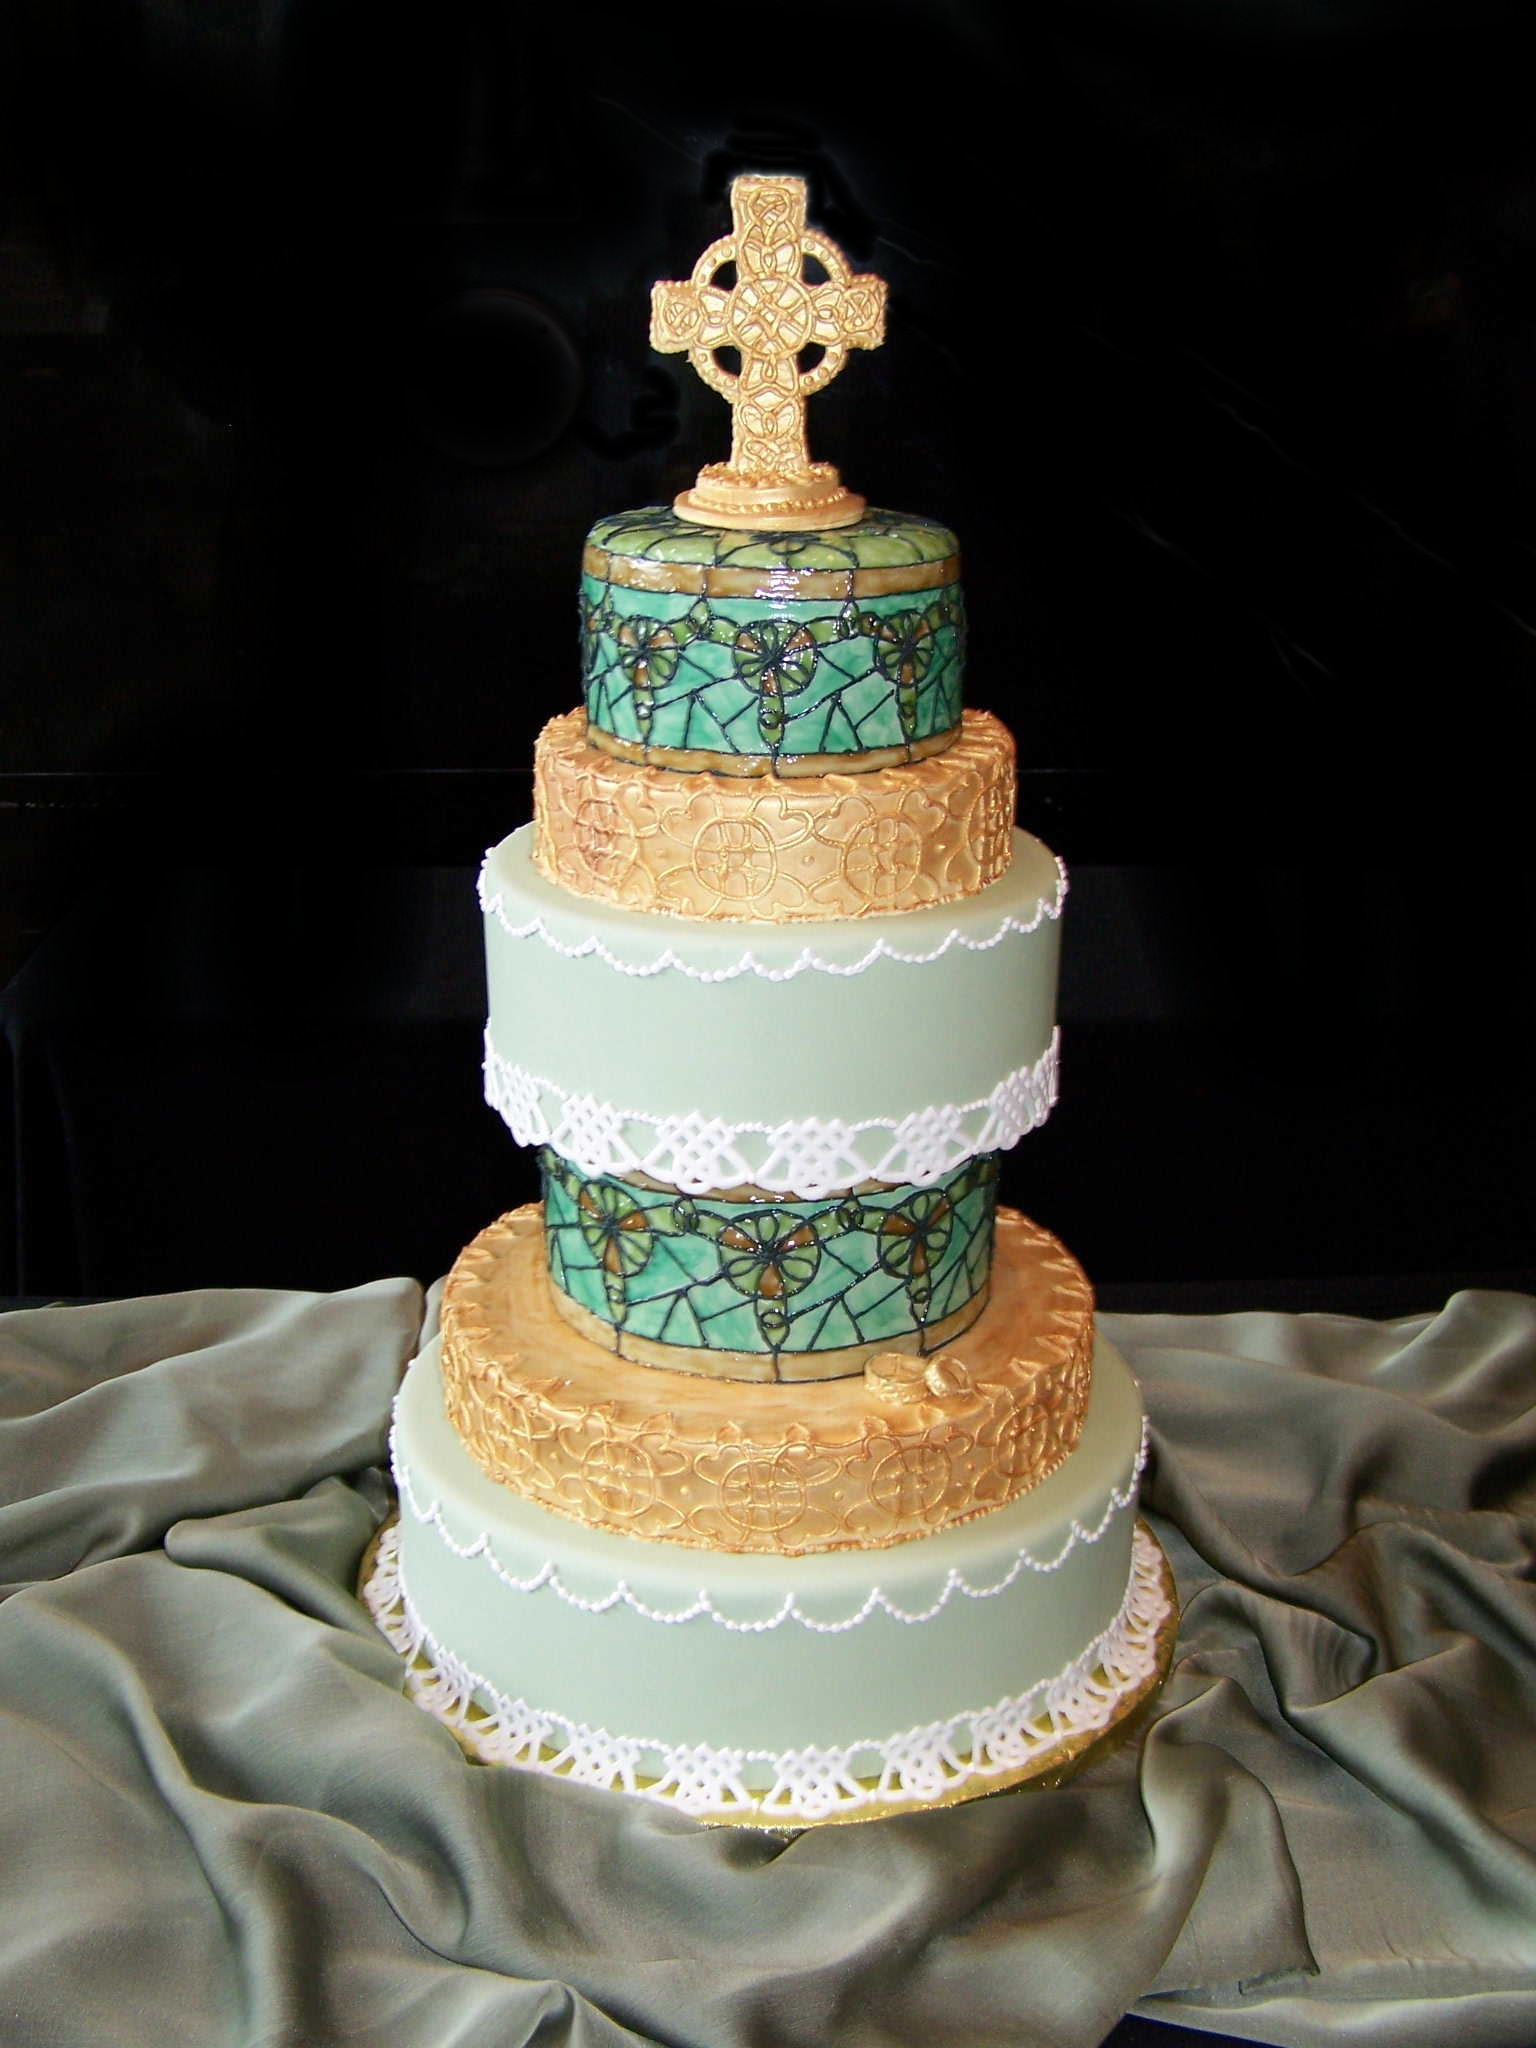 Cakes, white, green, brown, black, gold, cake, Cakes by suzy